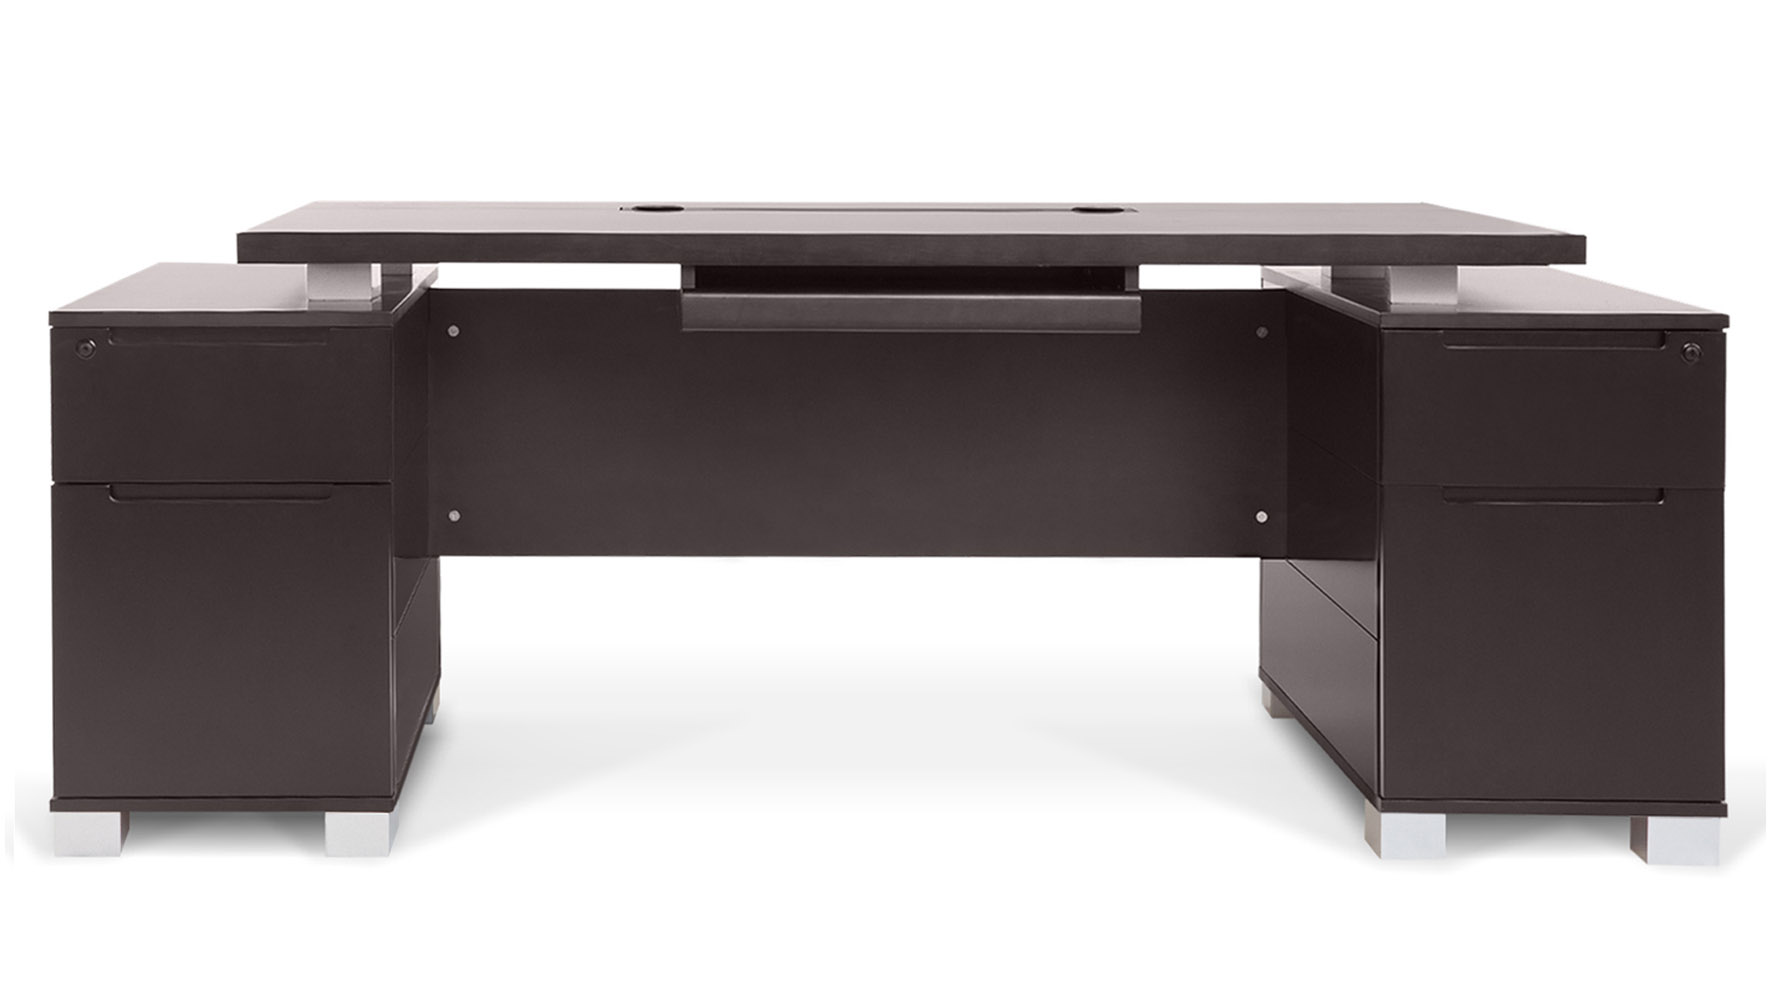 ford executive modern desk with filing cabinets  dark wood finish  zurifurniture. ford executive modern desk with filing cabinets  dark wood finish